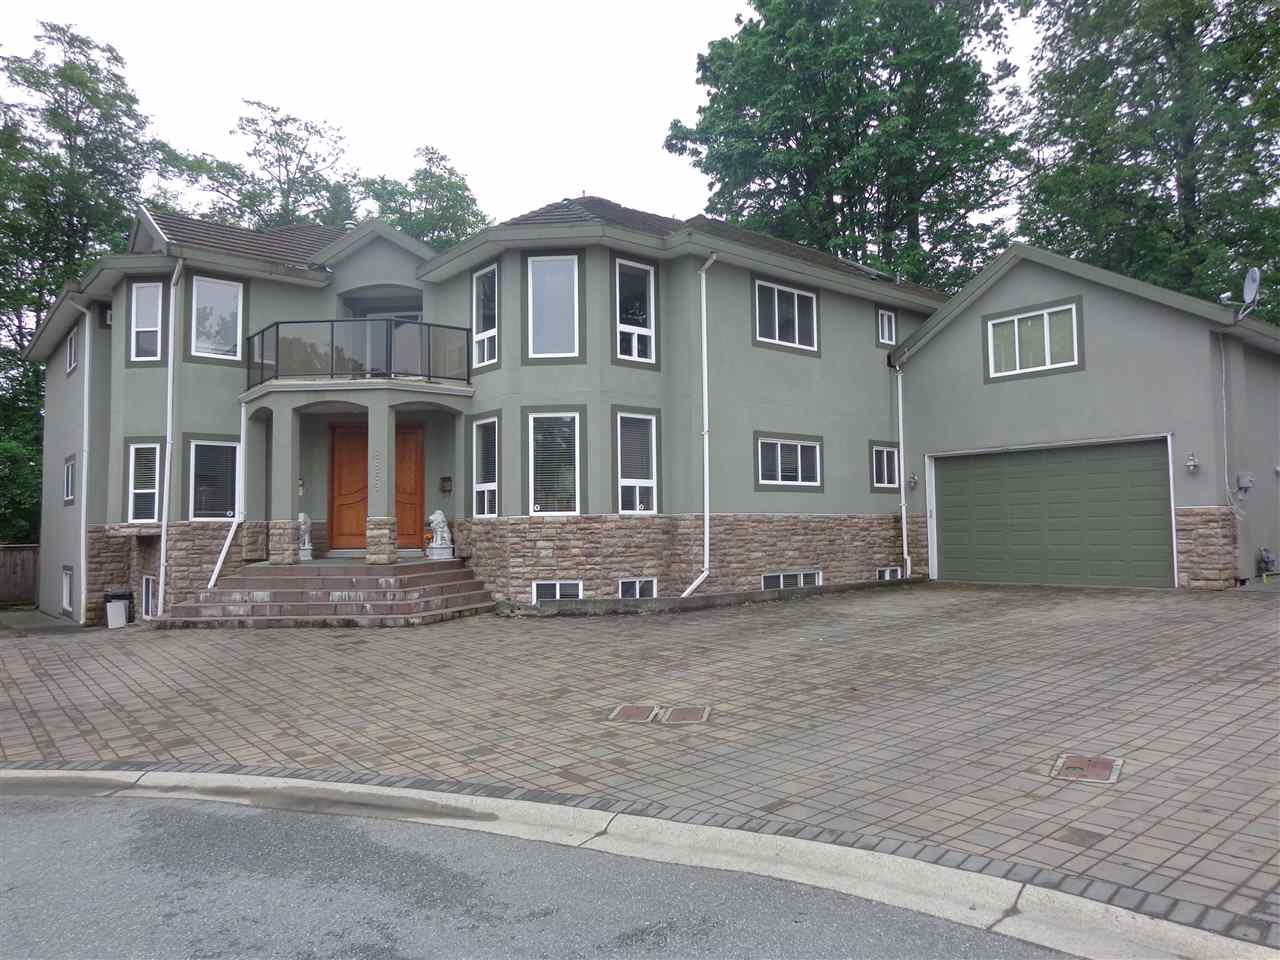 Main Photo: 8869 EDINBURGH Drive in Surrey: Queen Mary Park Surrey House for sale : MLS®# R2370968